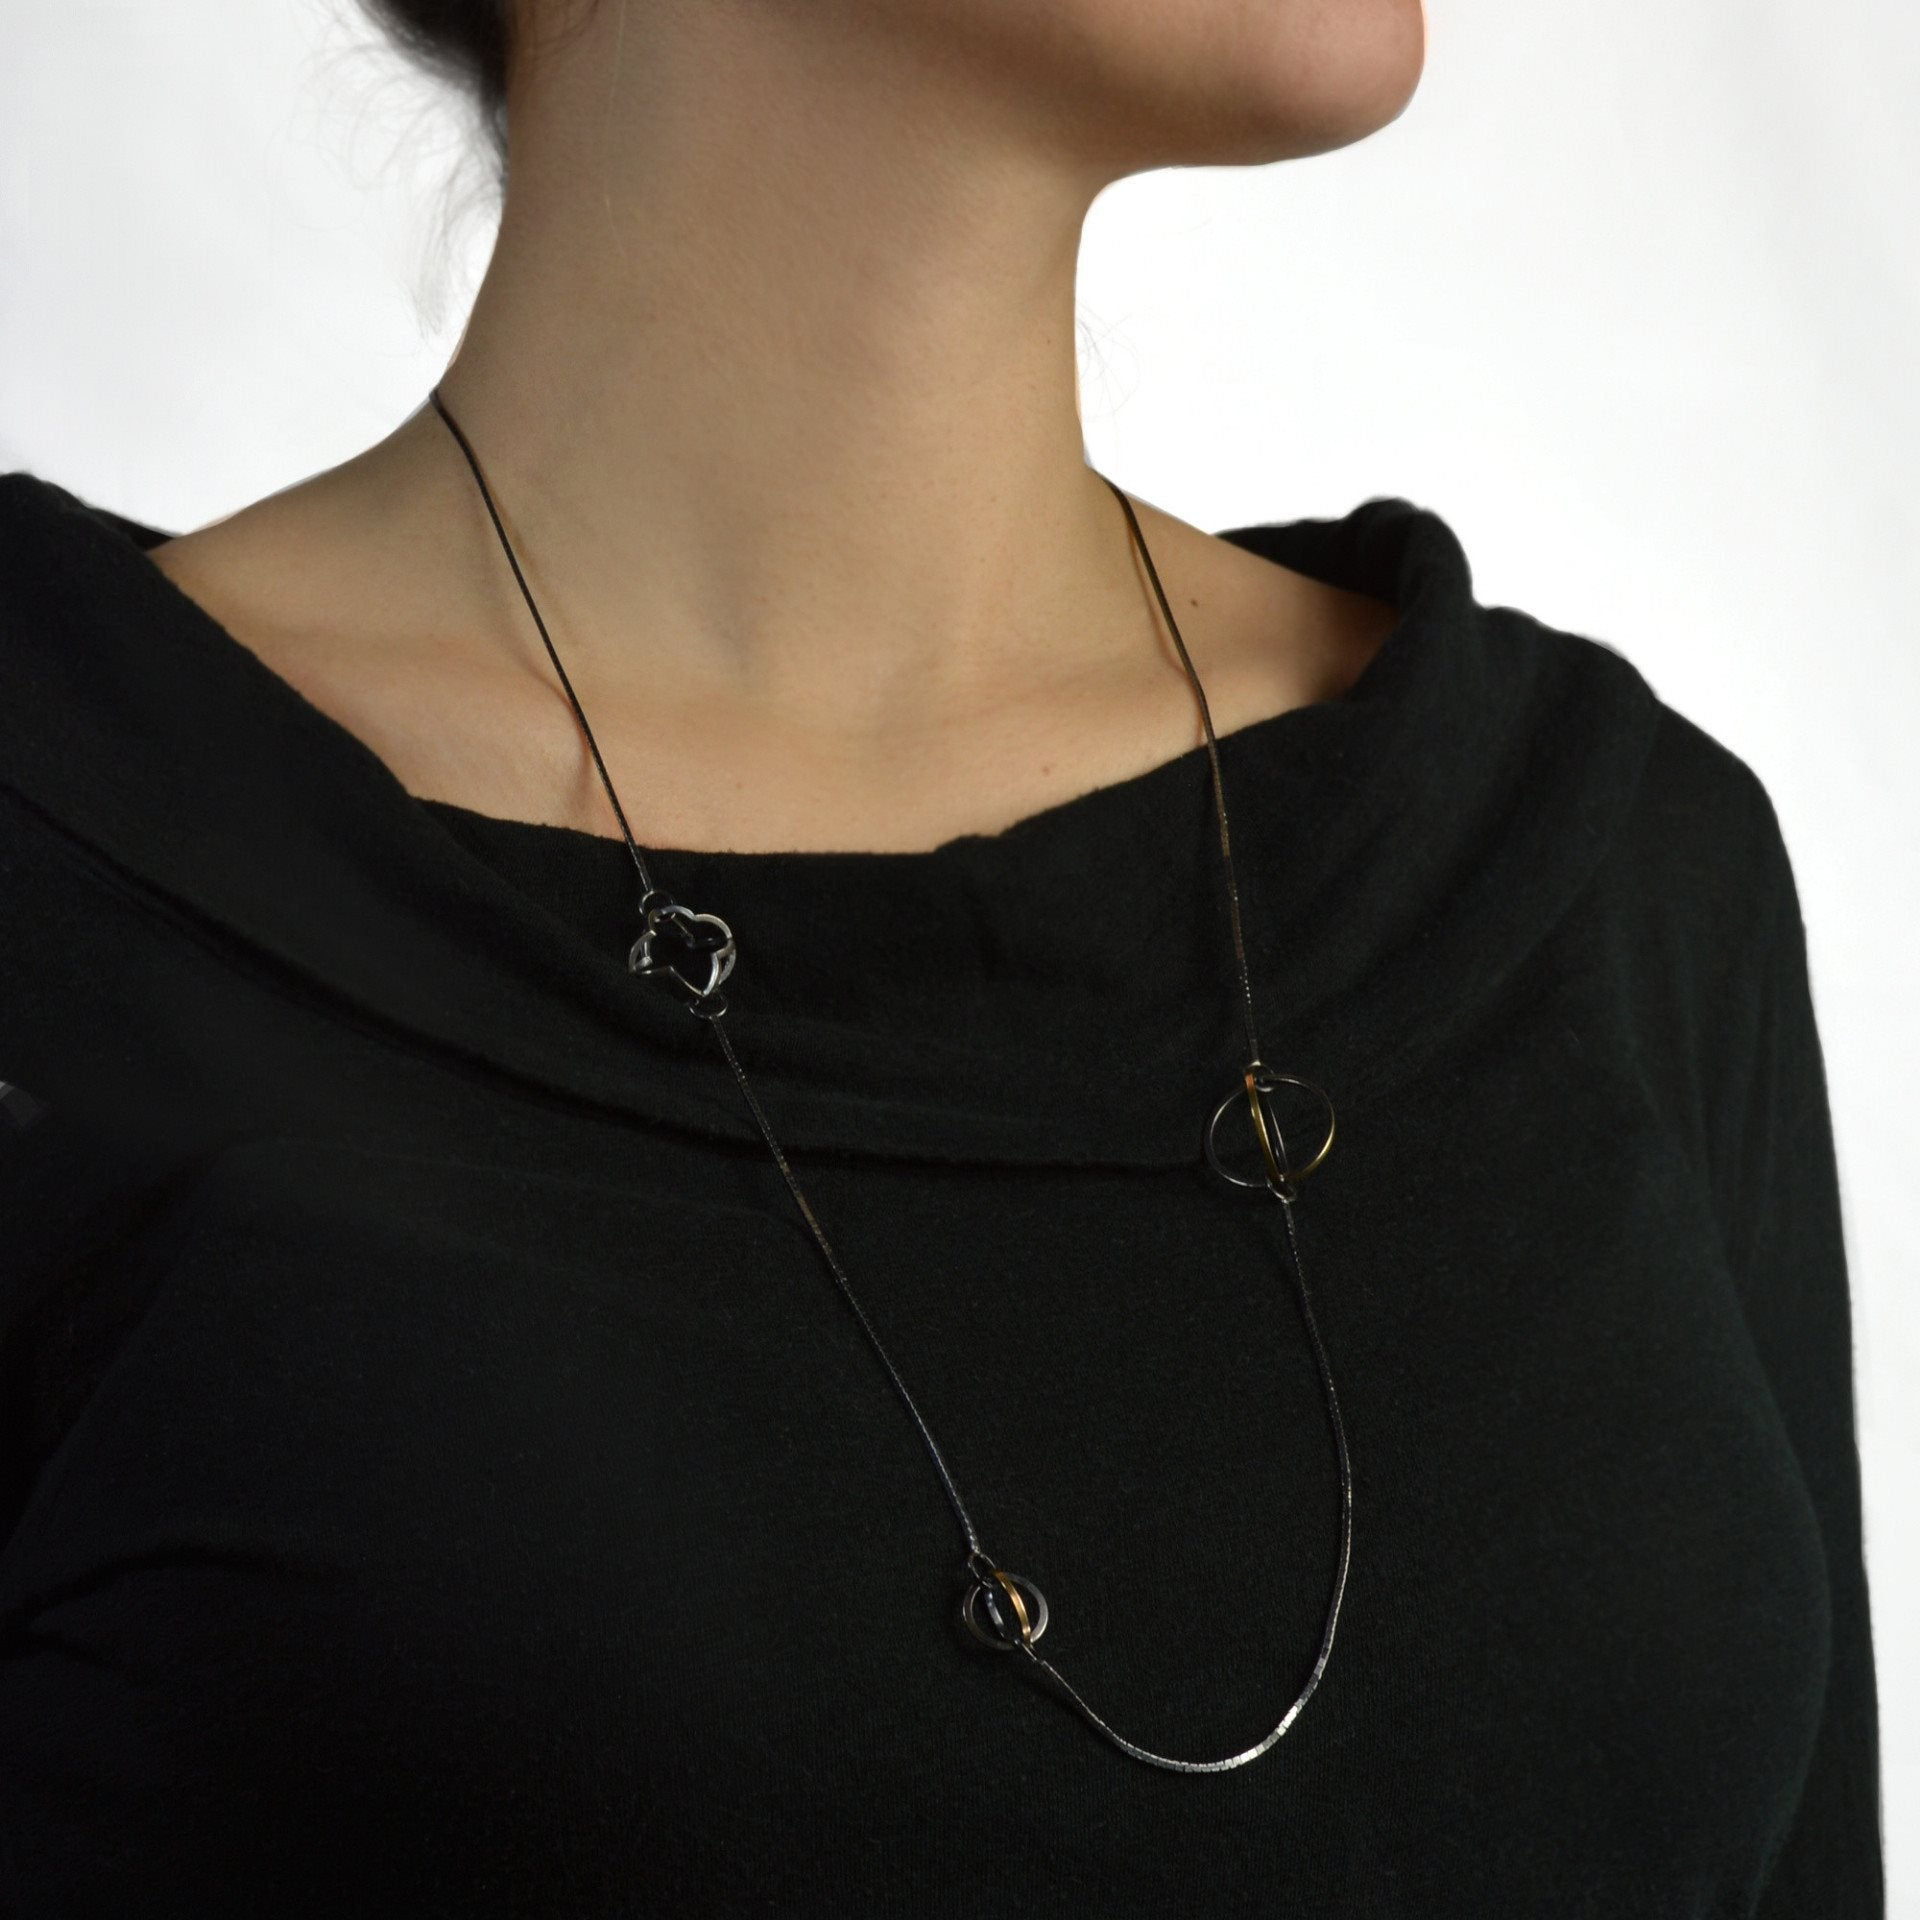 Black Patina on Sterling Silver with 22k Gold Highlight the Geometric Shapes on This Long Necklace